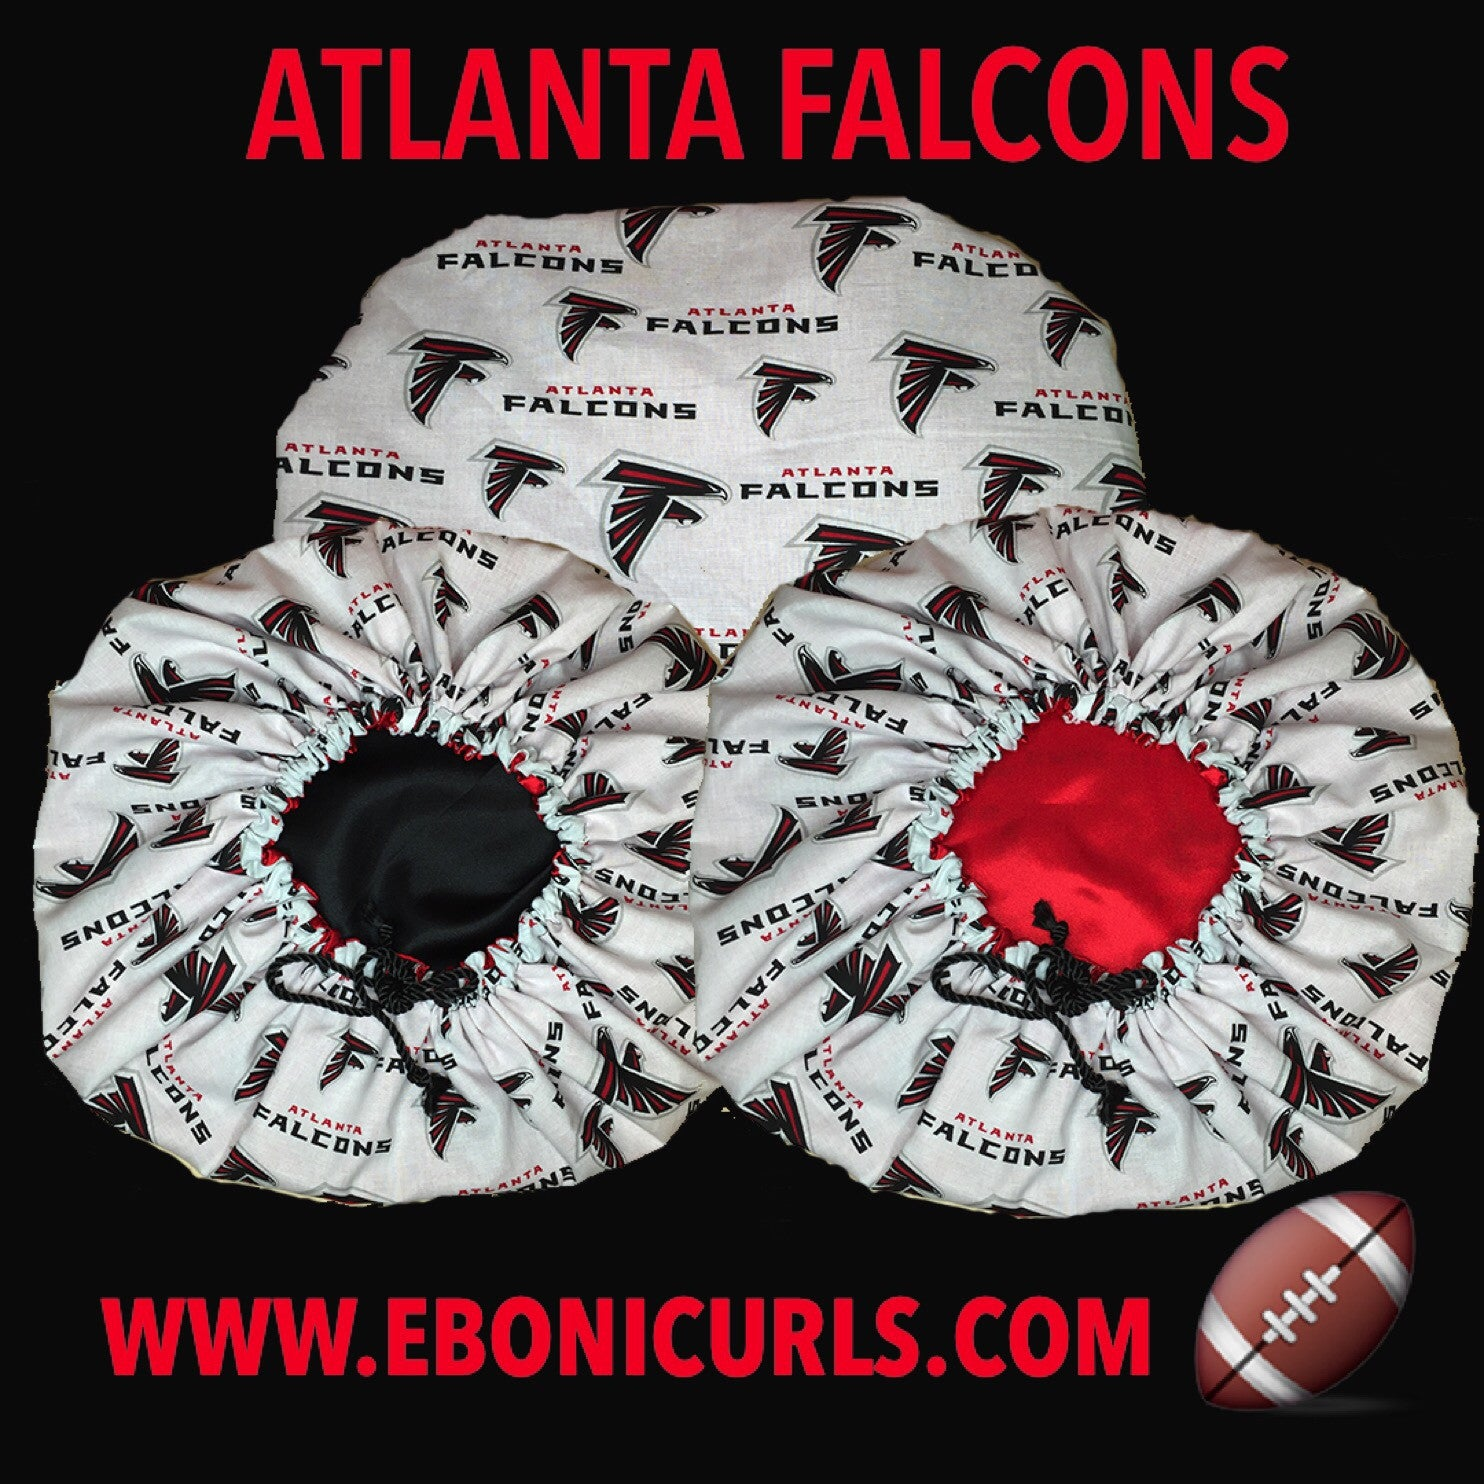 Falcons Fans Ebonnet